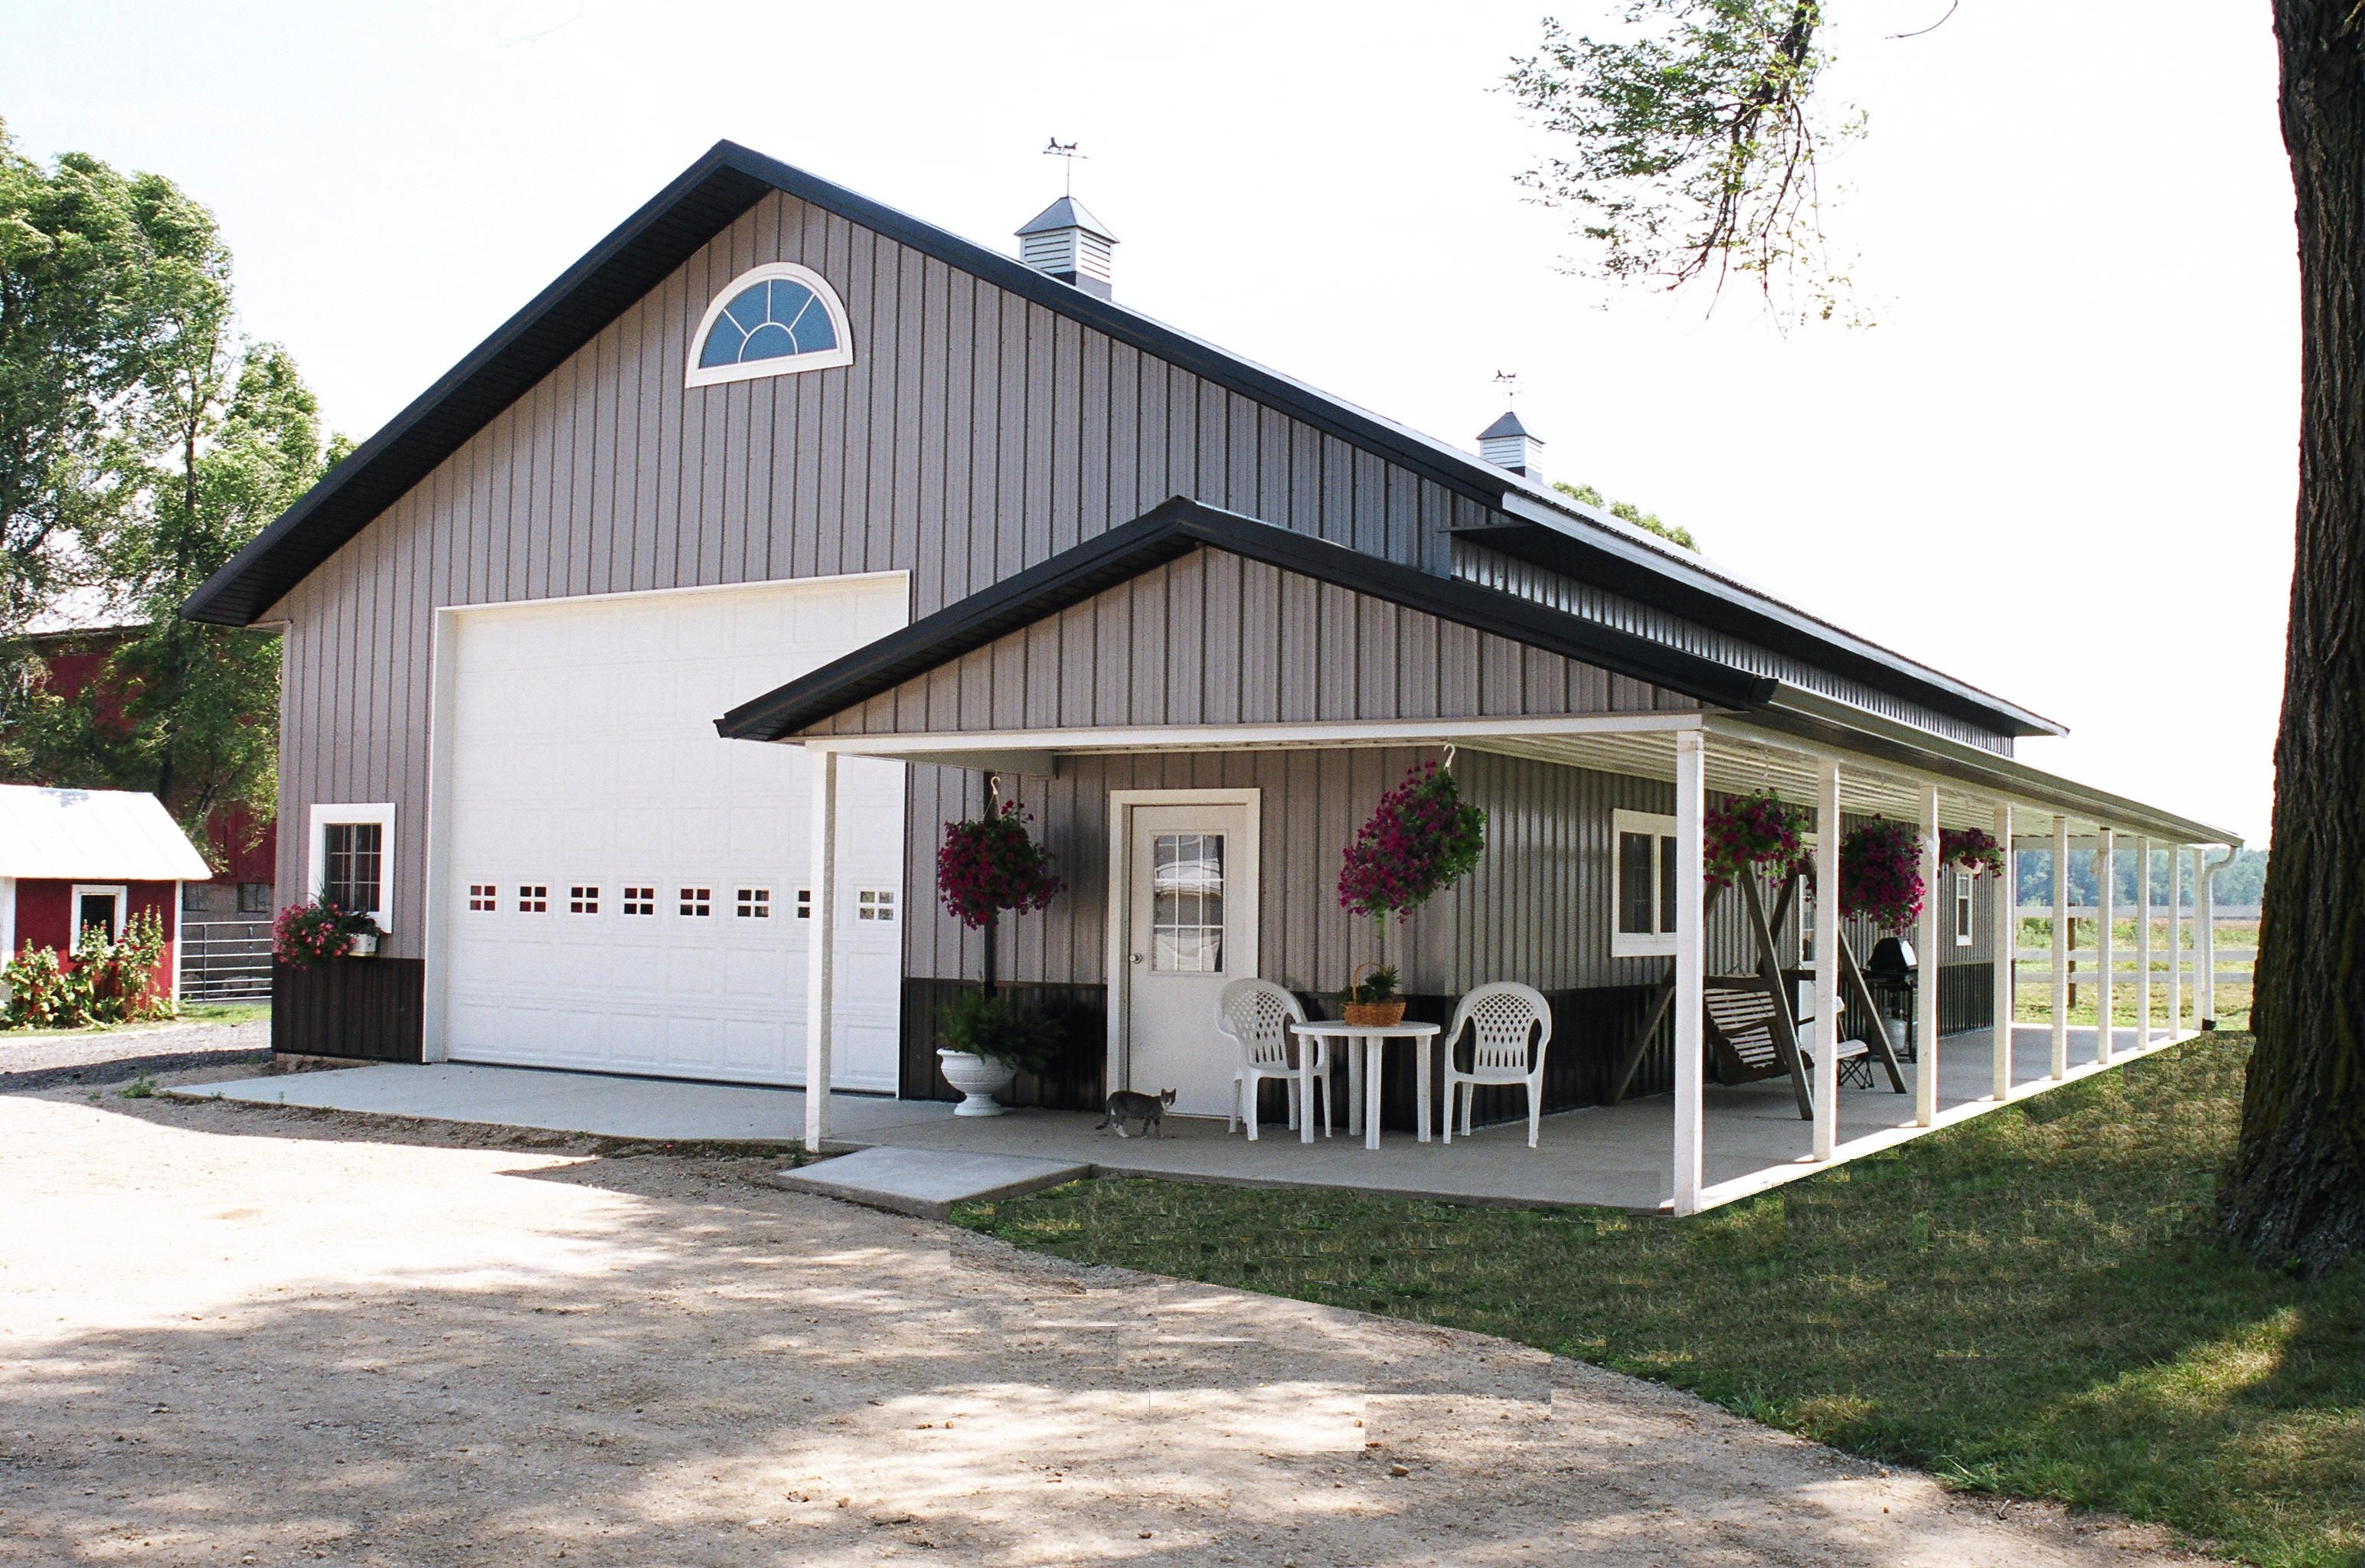 Pole barn shed home living small smart pinterest - Garage exterieur metal ...